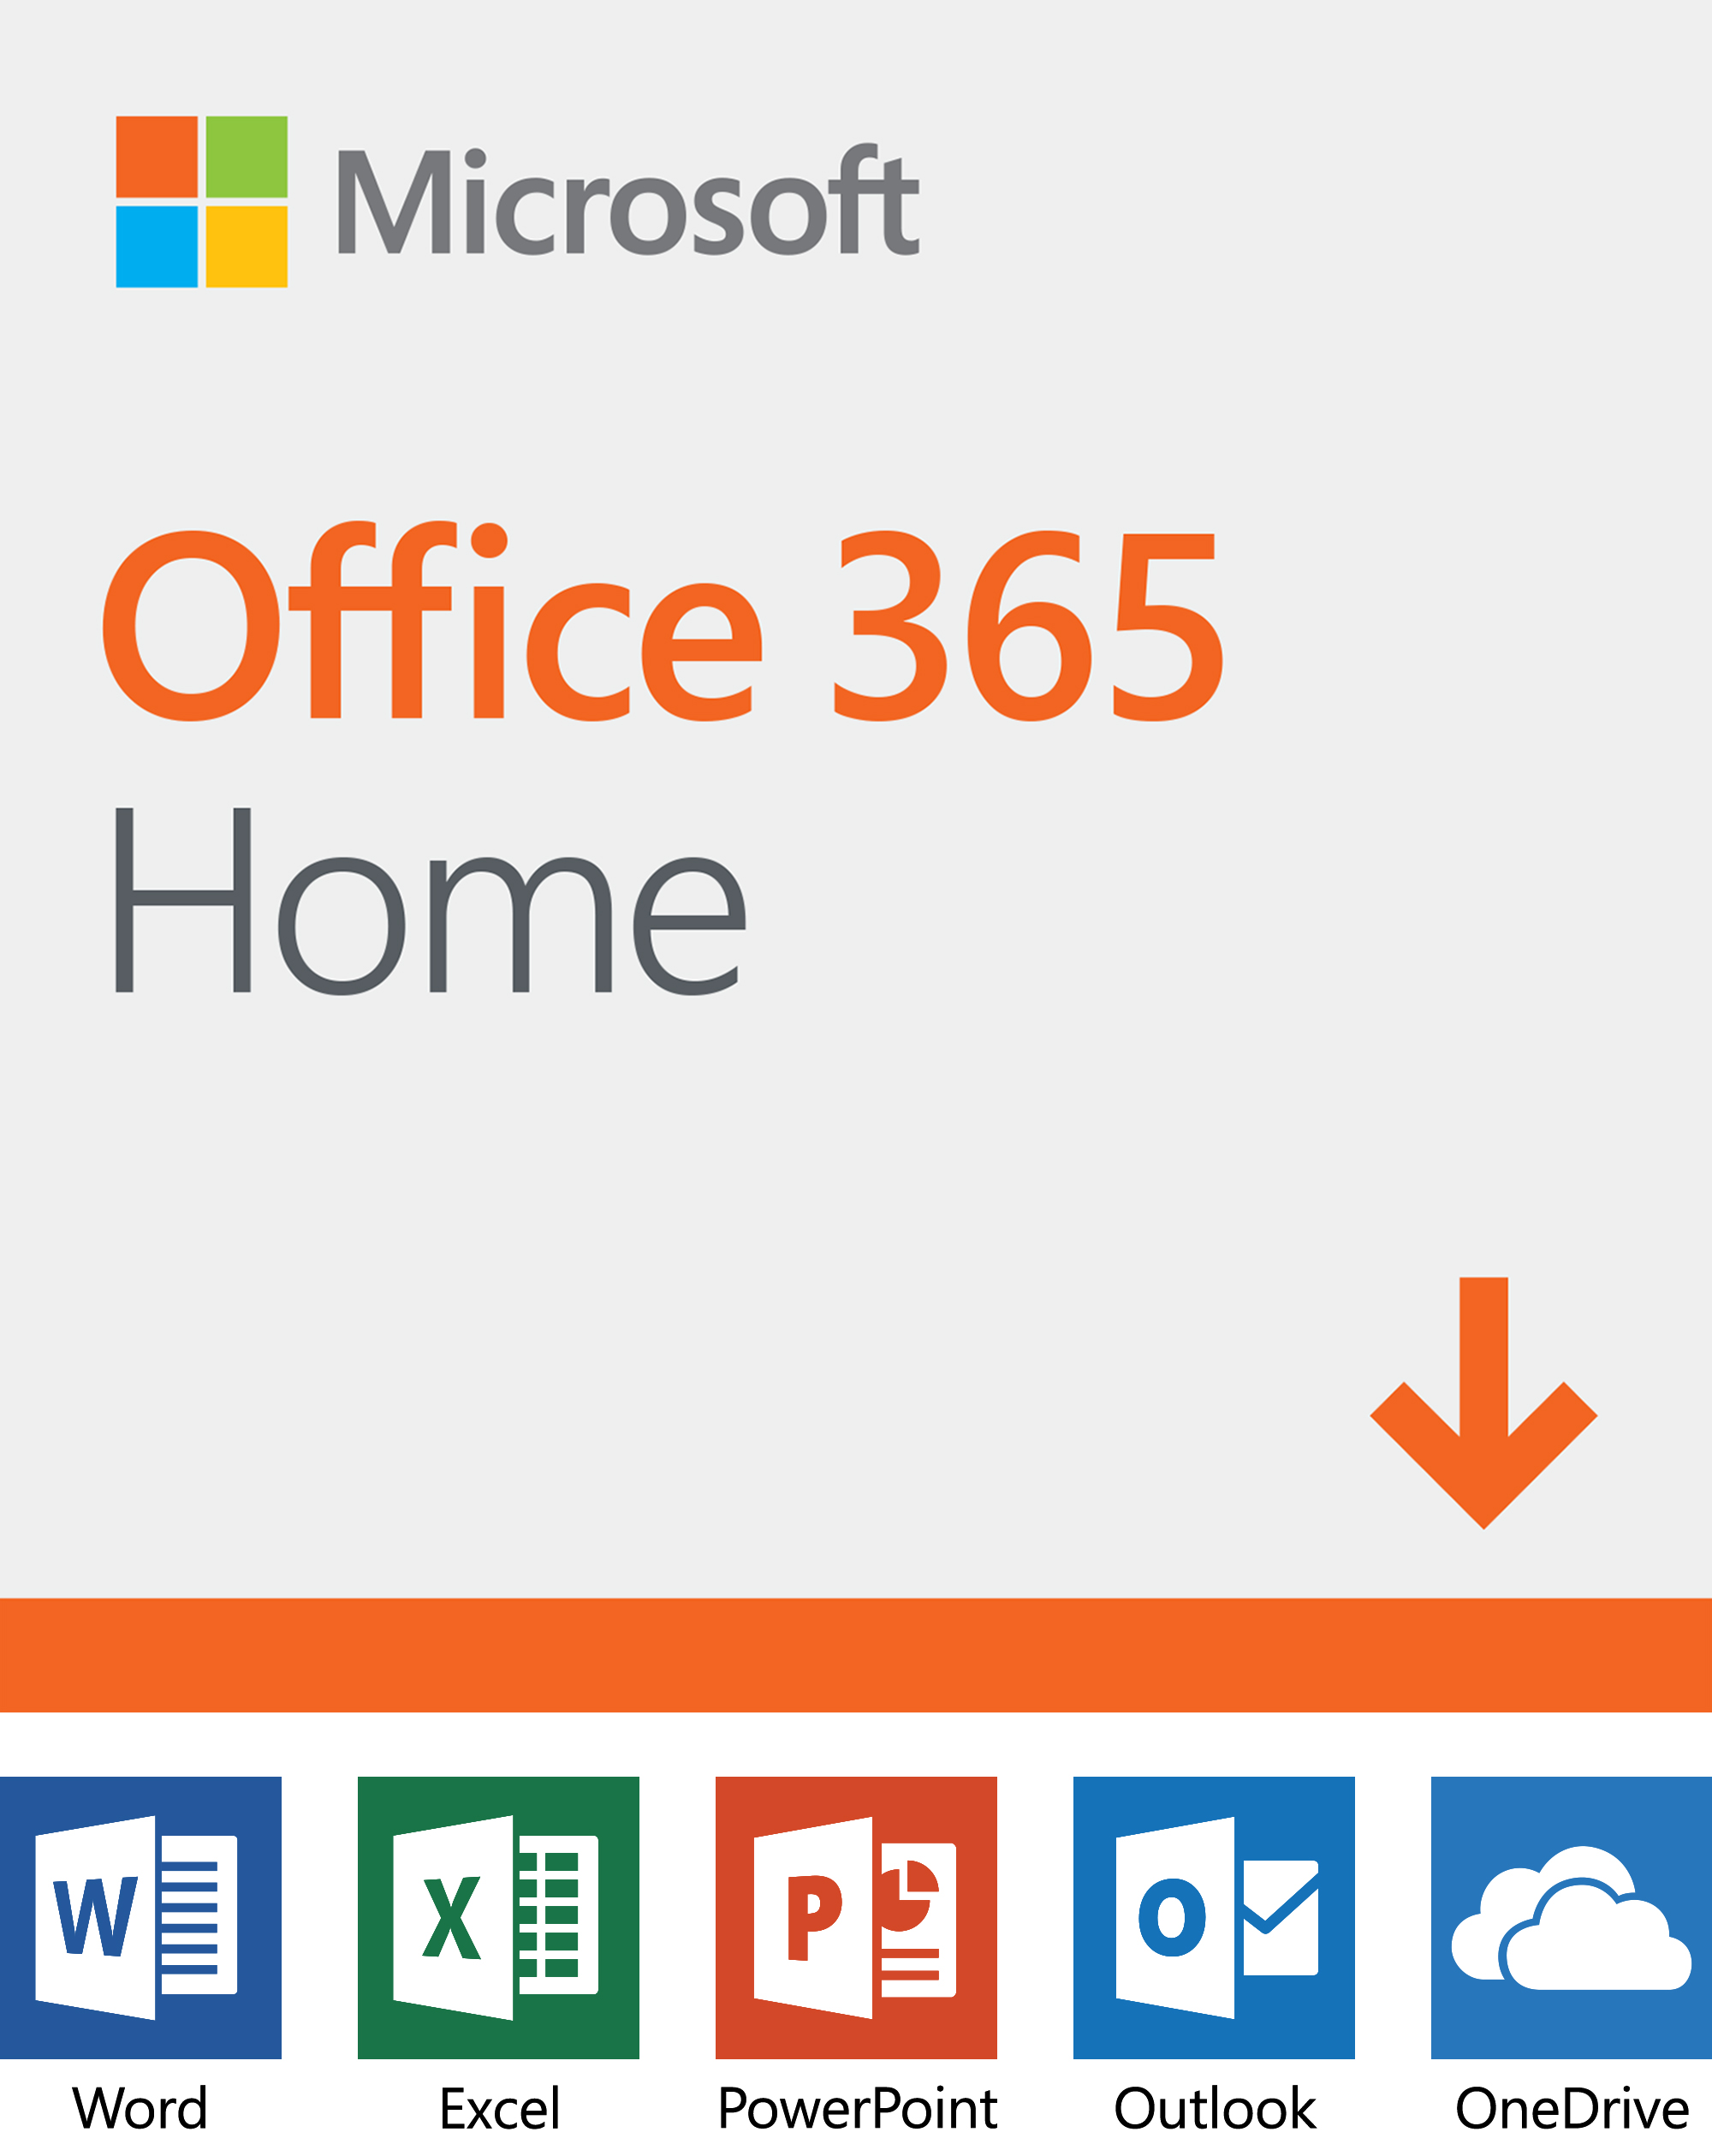 Microsoft office 365 home Card Microsoft Office 365 Home 12month Subscription Up To People Pcmac Download Walmartcom Walmart Microsoft Office 365 Home 12month Subscription Up To People